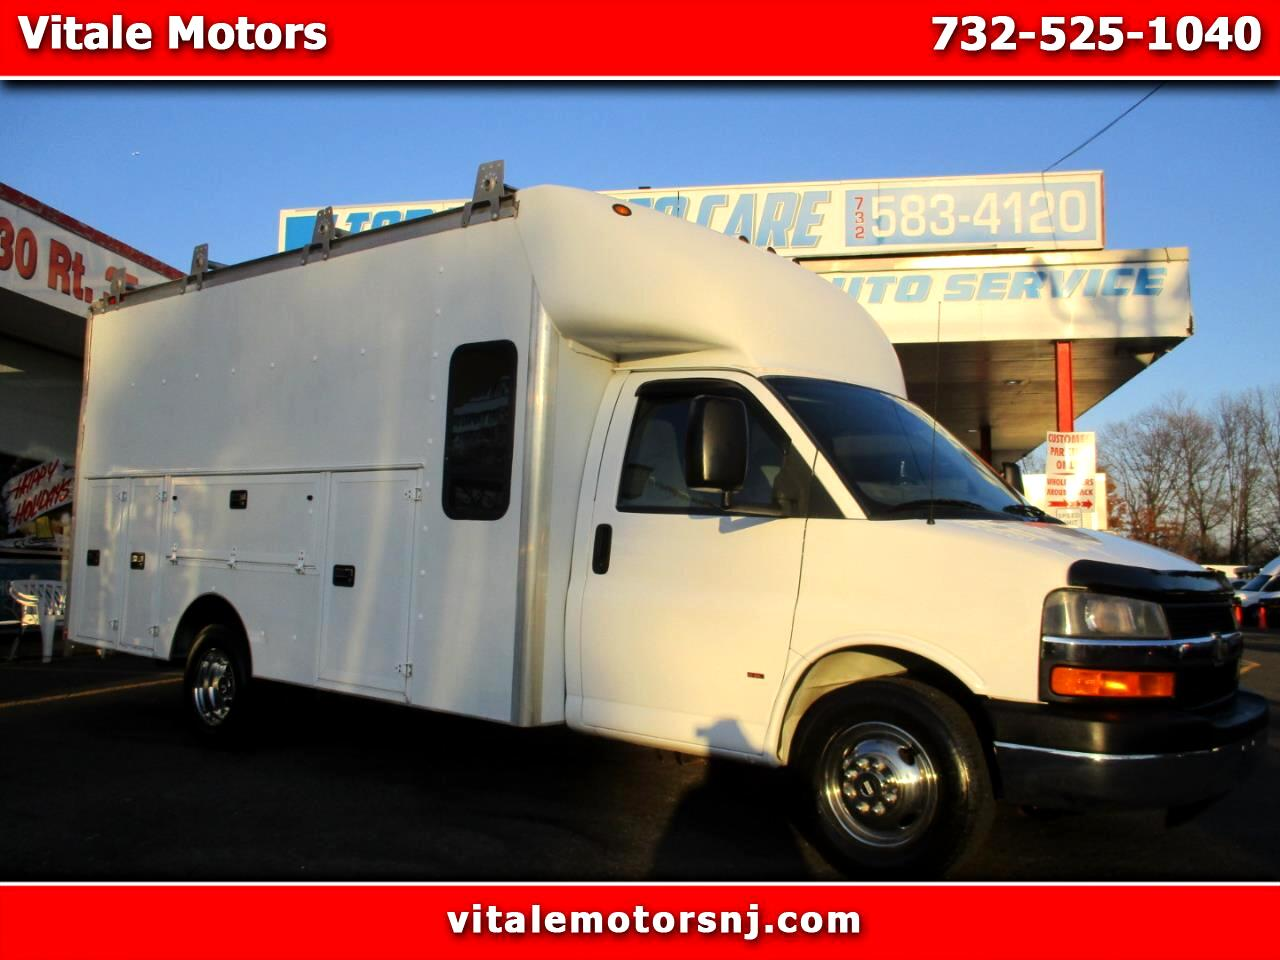 2008 Chevrolet Express UTILITY BOX TRUCK W/ REAR SEAT